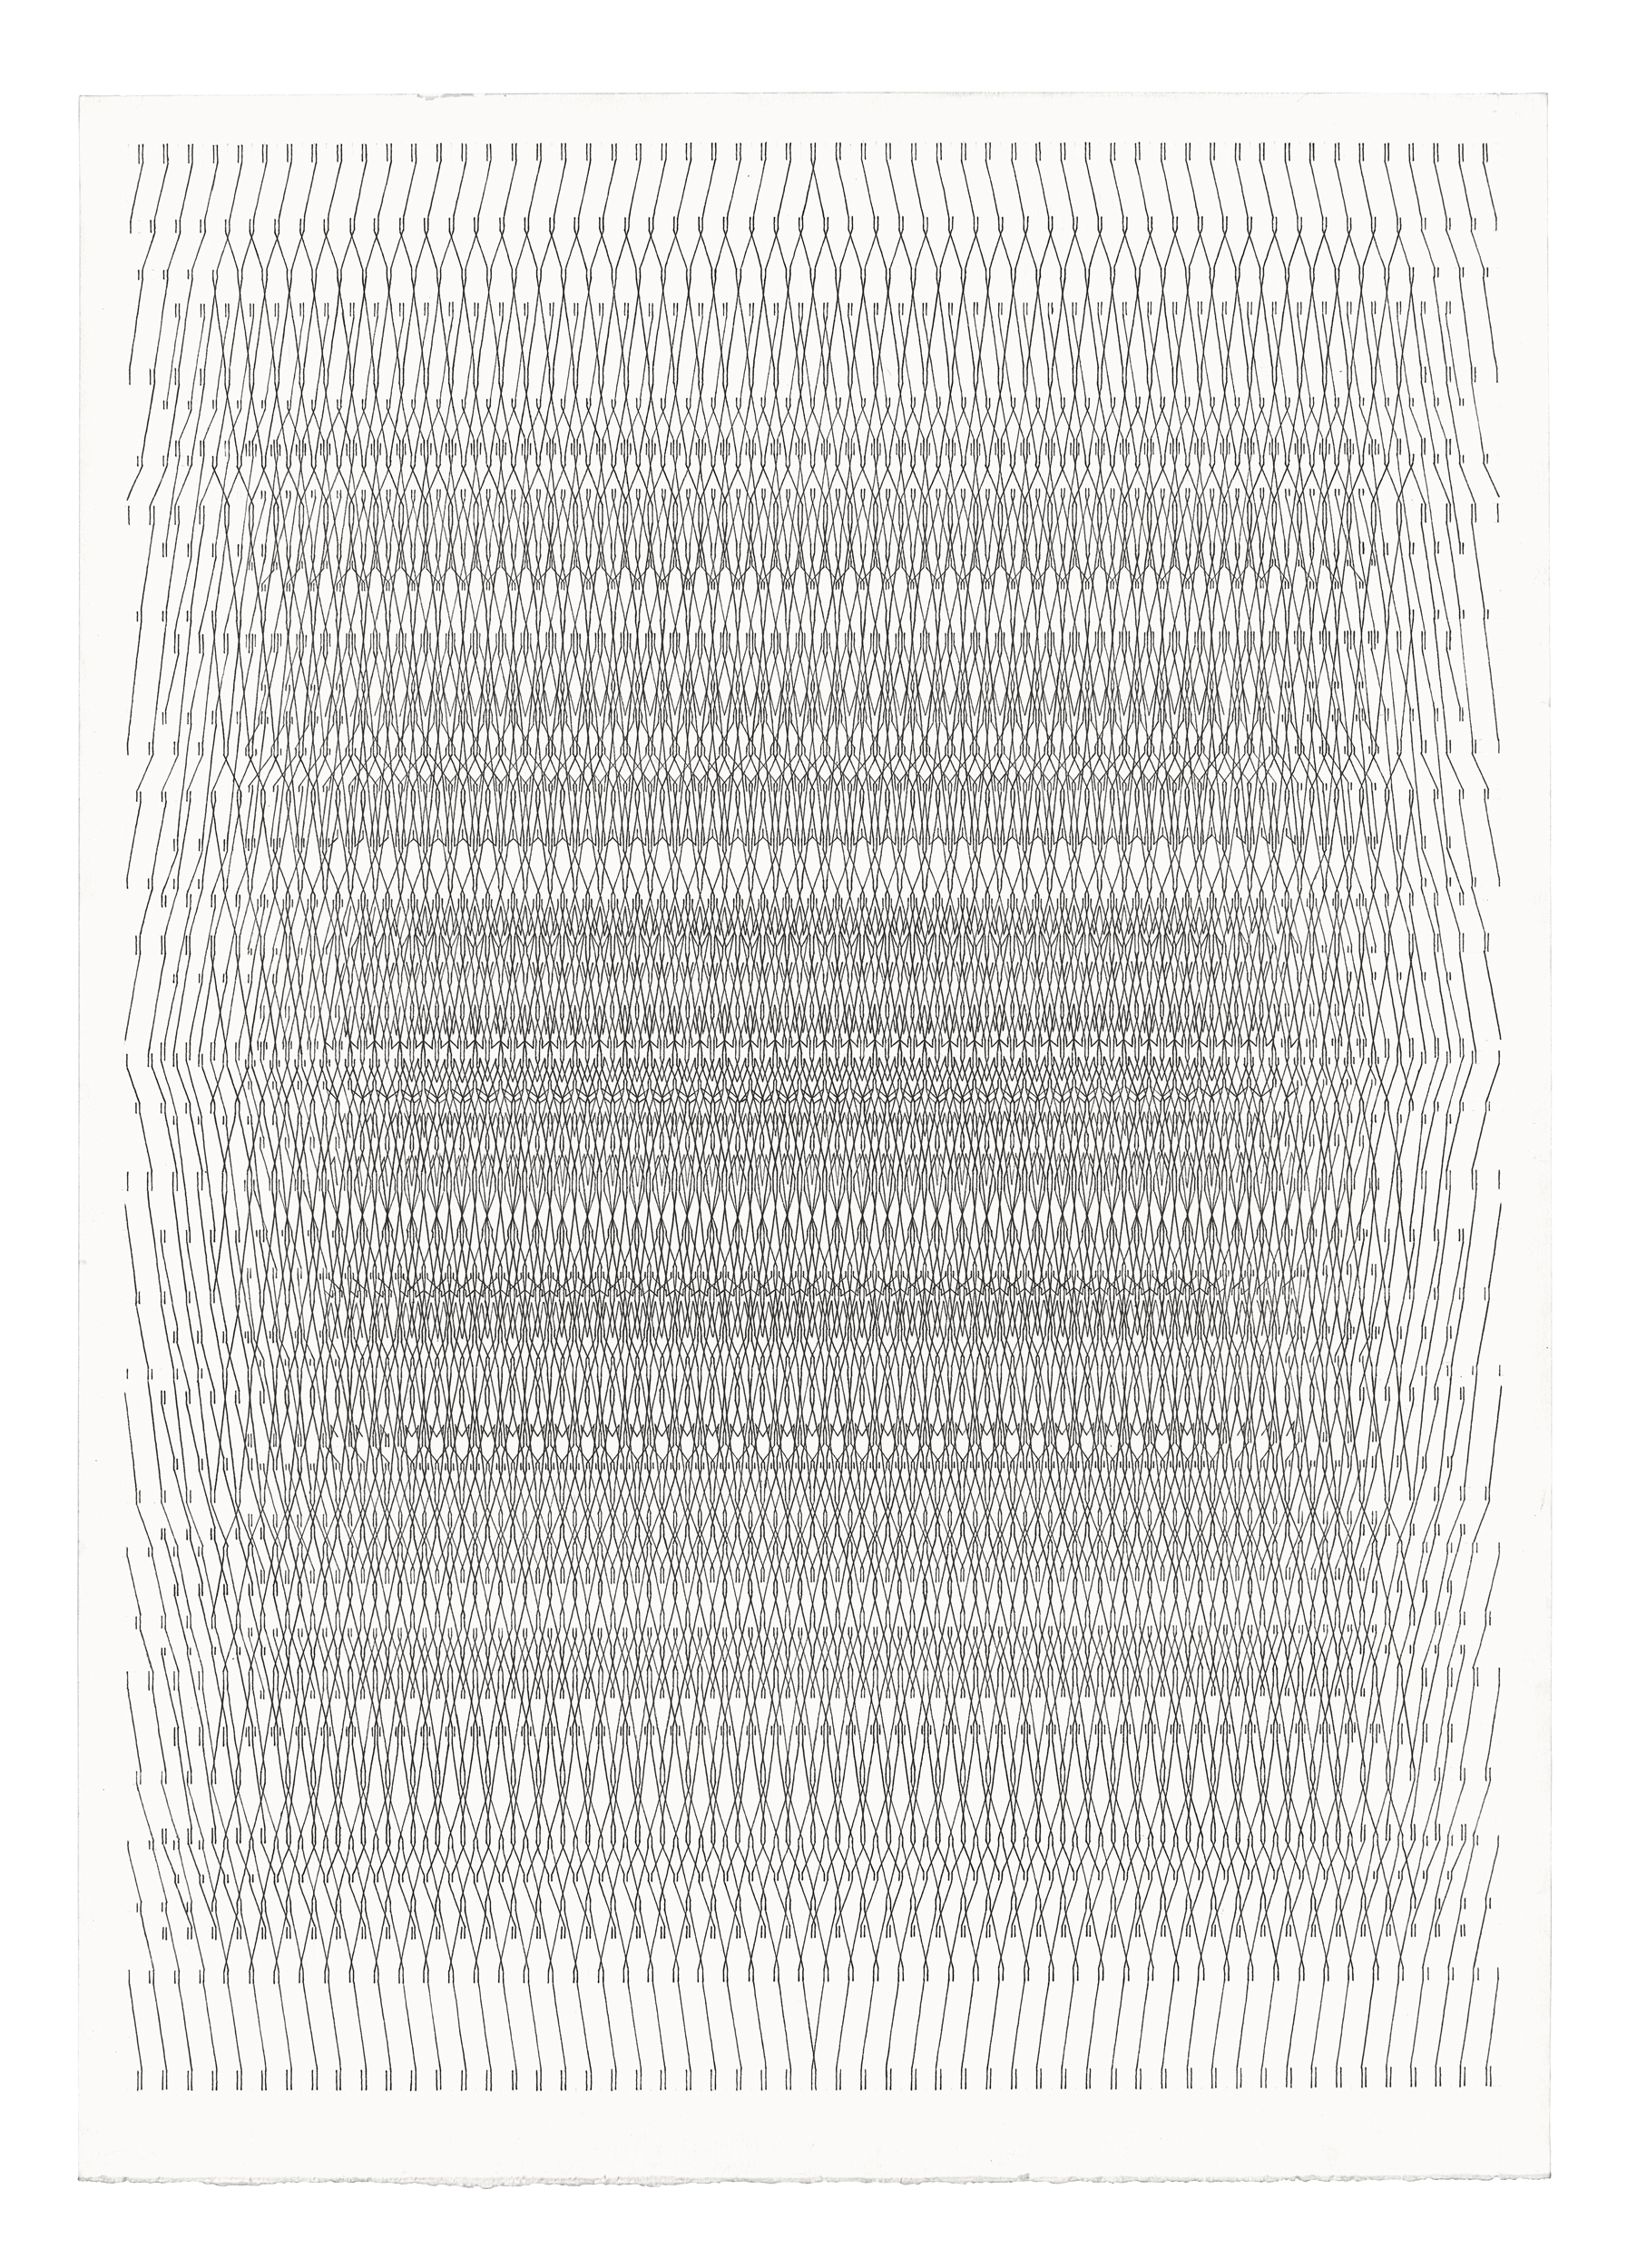 ODD ARK•LA is pleased to announce The Symmetry of Separation, a solo exhibition by Los Angeles-based artist Brian Randolph. In each of these recent ink on paper works, Randolph has used a restrained drawing vocabulary of vertical and diagonal lines to create a complex symmetrical field configuration. Interconnected patterns in rows like lines of abstract multi-dimensional text emerge from the center of a highly ordered nest, blurred towards the edge by a visual delay.   With titles like  Pulse Scroll  and  Breathing Page  the drawings visualize a kind of illuminated manuscript floating in hyperspace. A swarm of component parts hanging together in a fragile balance, evoking the bioelectric field of the body, the vibrating superstrings of theoretical physics, and the emerging and dissolving patterns of light seen in altered states of consciousness.  Randolph's works are resonant with the time spent making them and the patient cultivation of a precise image drawn by hand. Imperfections in the line, slight compressions of the grid, traces of erased graphite and the handling of the paper remain as an index of a diligent process.  Brian Randolph received a BFA from the Maryland Institute College of Art in 2001. His work has appeared in solo exhibitions at Gallery Four and School 33 in Baltimore. In 2017, Randolph was included in Parallel Cities at Ms. Barber's, and Set The Table at BBQ LA, both in Los Angeles. Other group exhibitions include Tillou Fine Art and Spring Break Art Show, New York, LAVA Projects, Steve Turner Gallery, and La Cienega Projects, Los Angeles, and Zic Zerp in Rotterdam.   For more information please contact  odd.ark.la@gmail.com